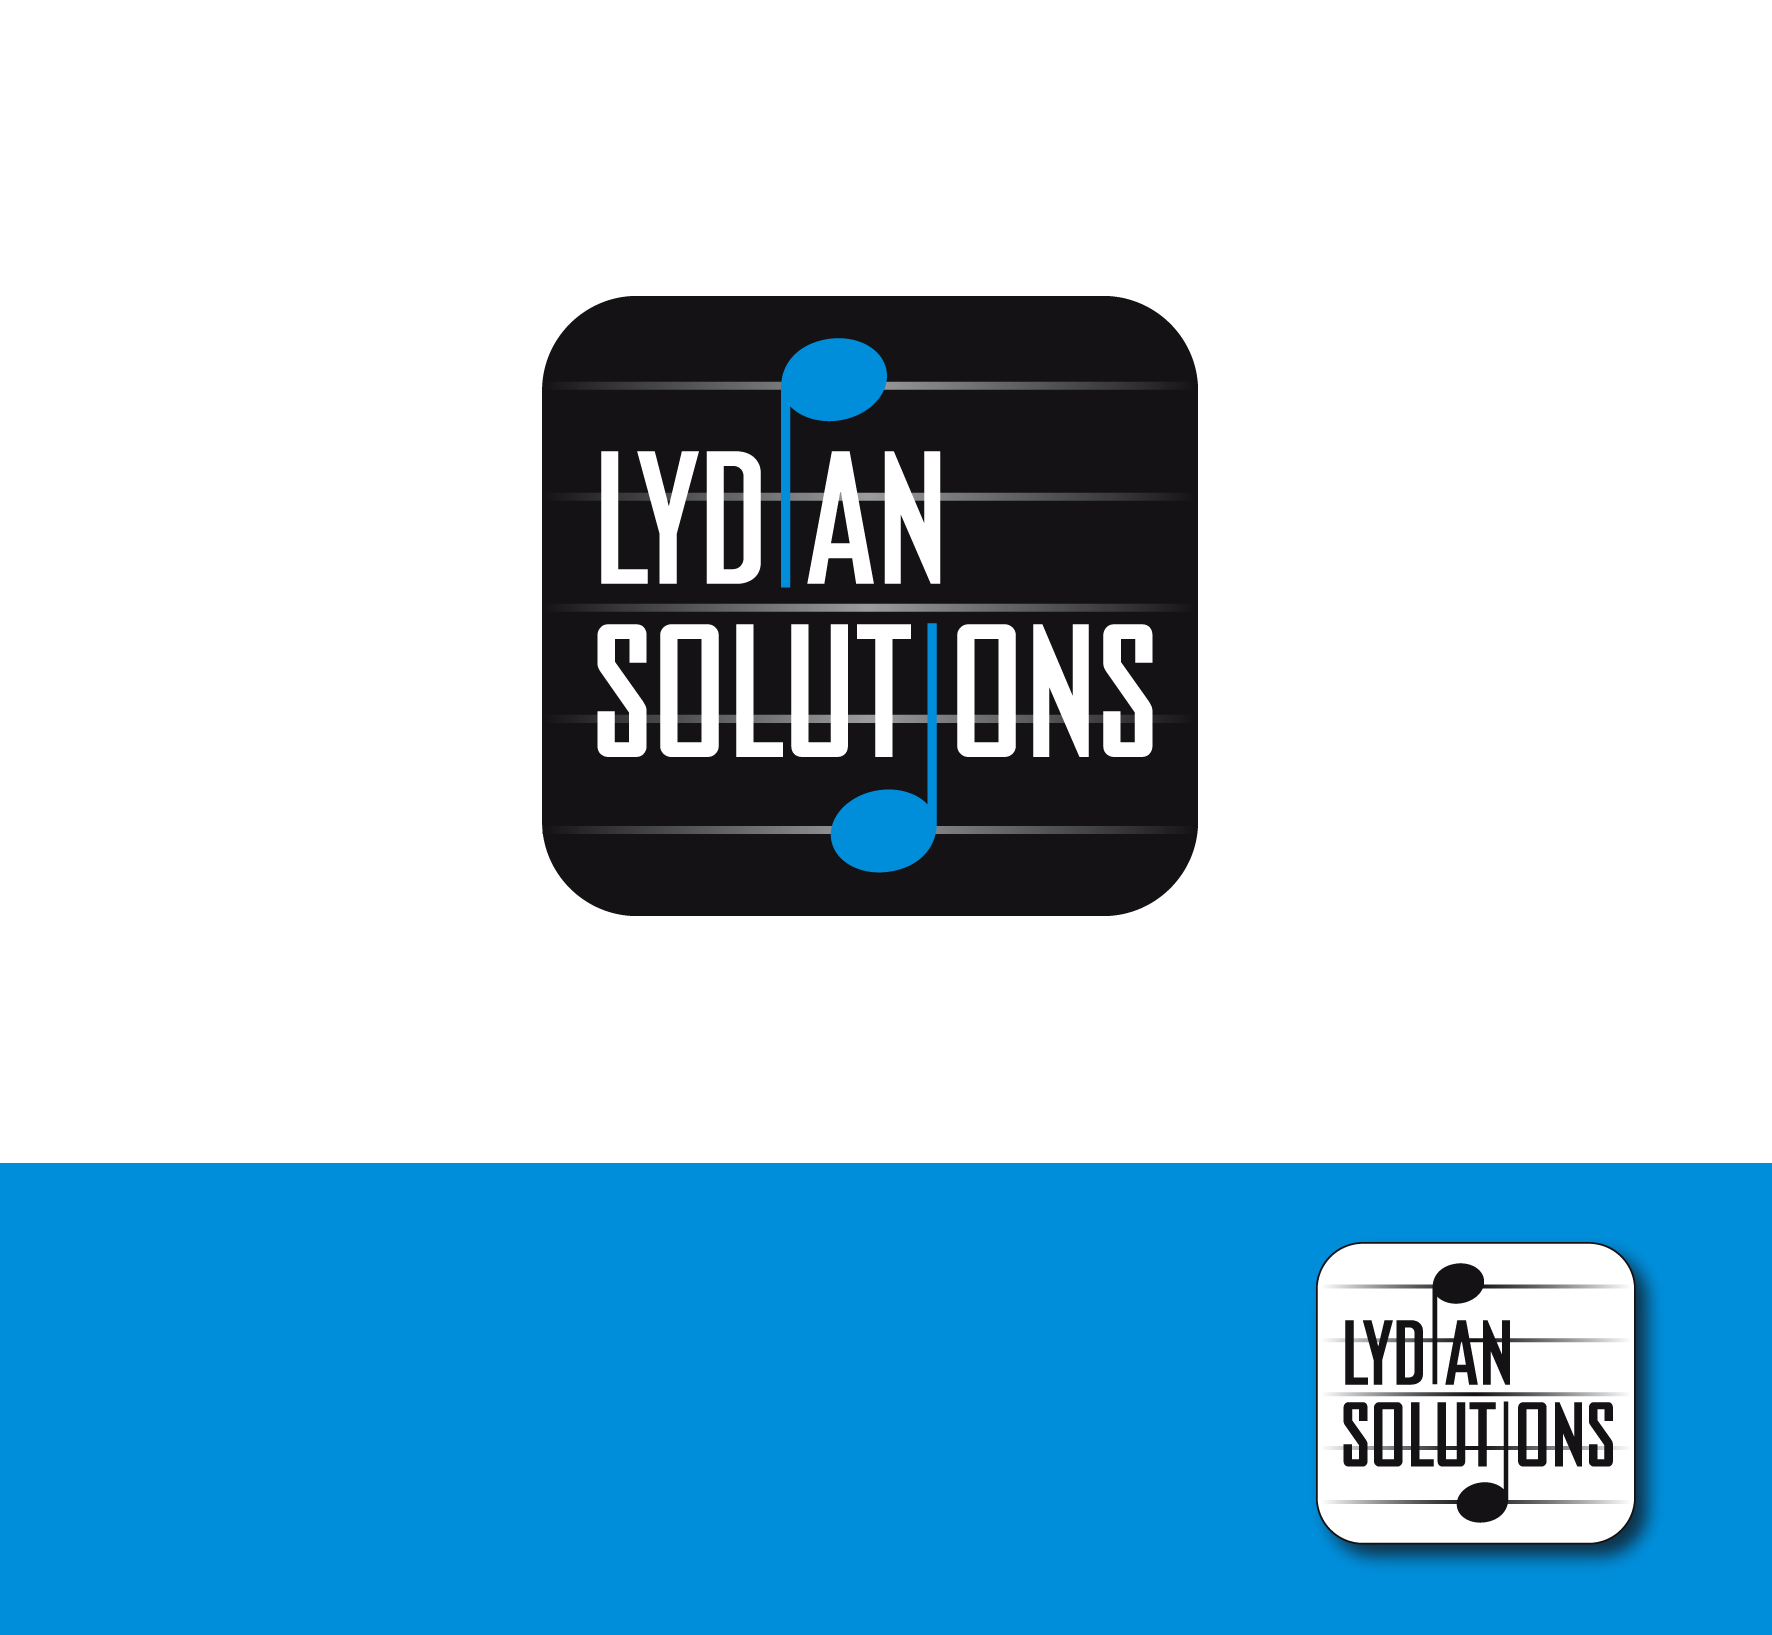 Logo Design by luna - Entry No. 26 in the Logo Design Contest Fun Logo Design for Lydian Solutions.